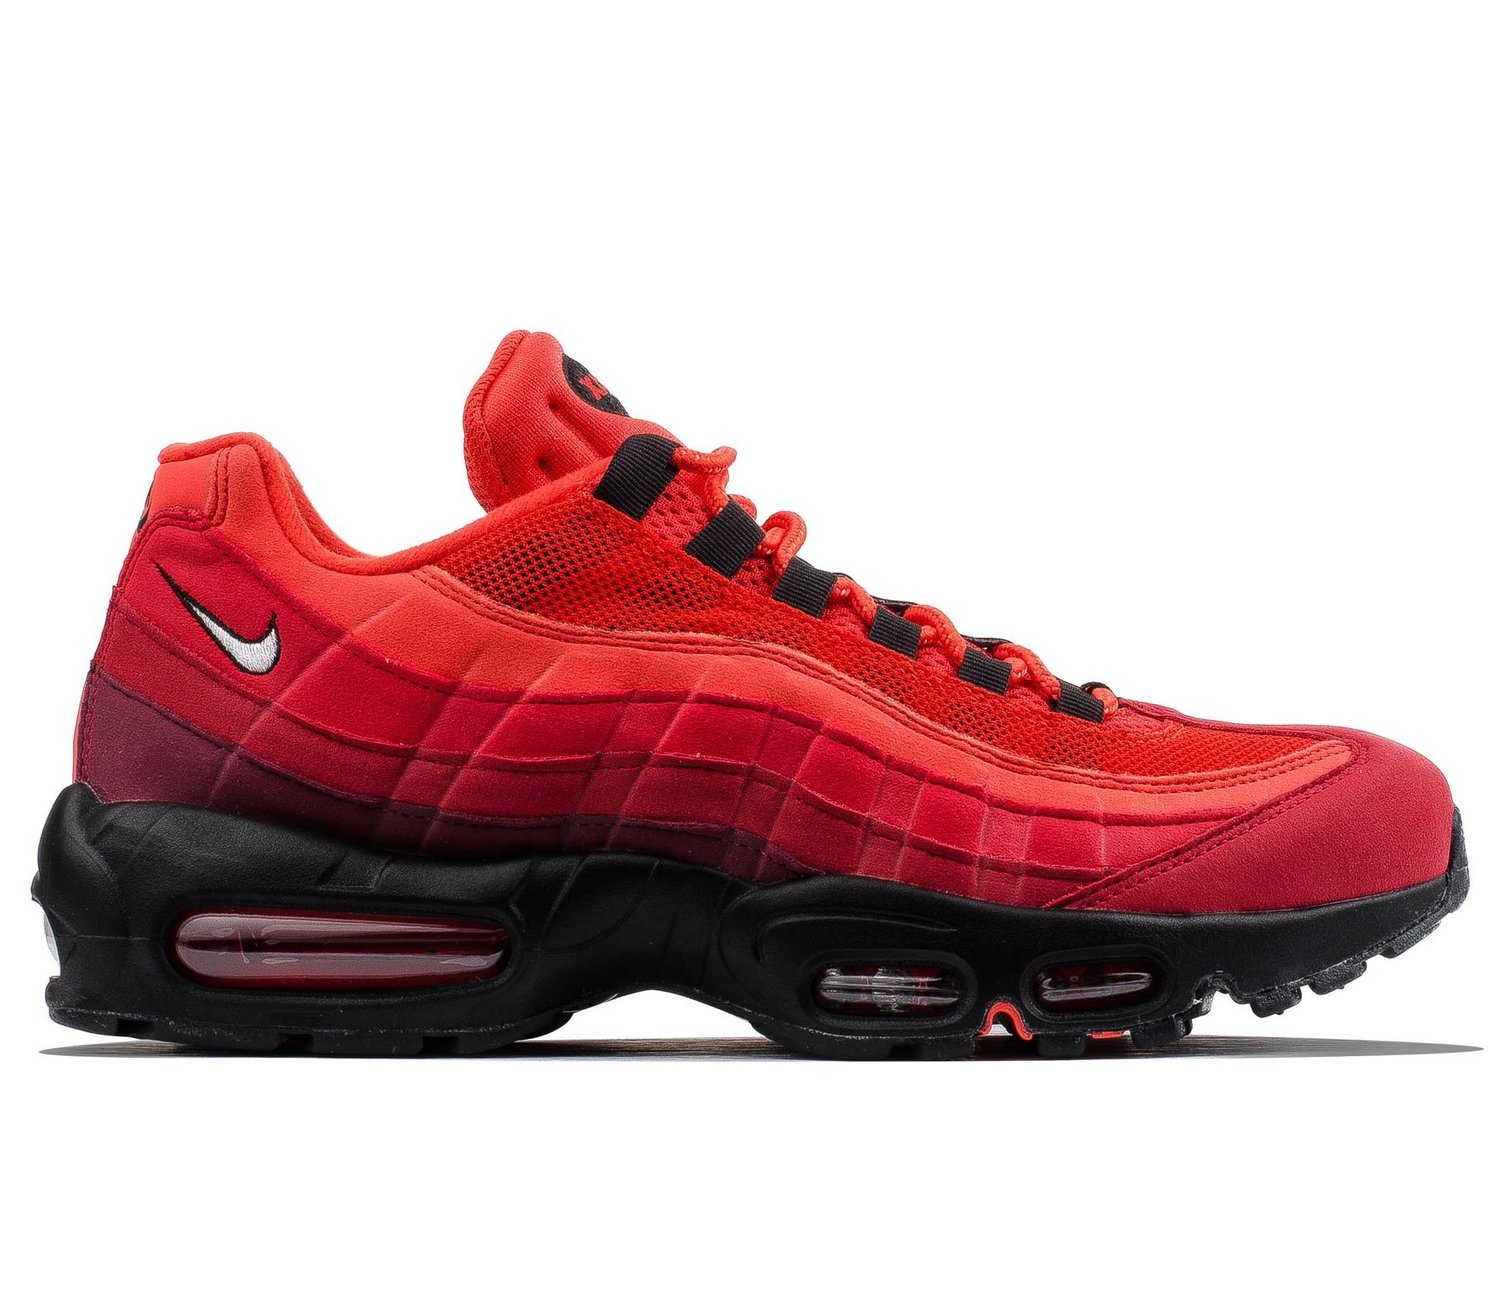 cfe5bace91d Now Available  Women s Nike Air Max 270